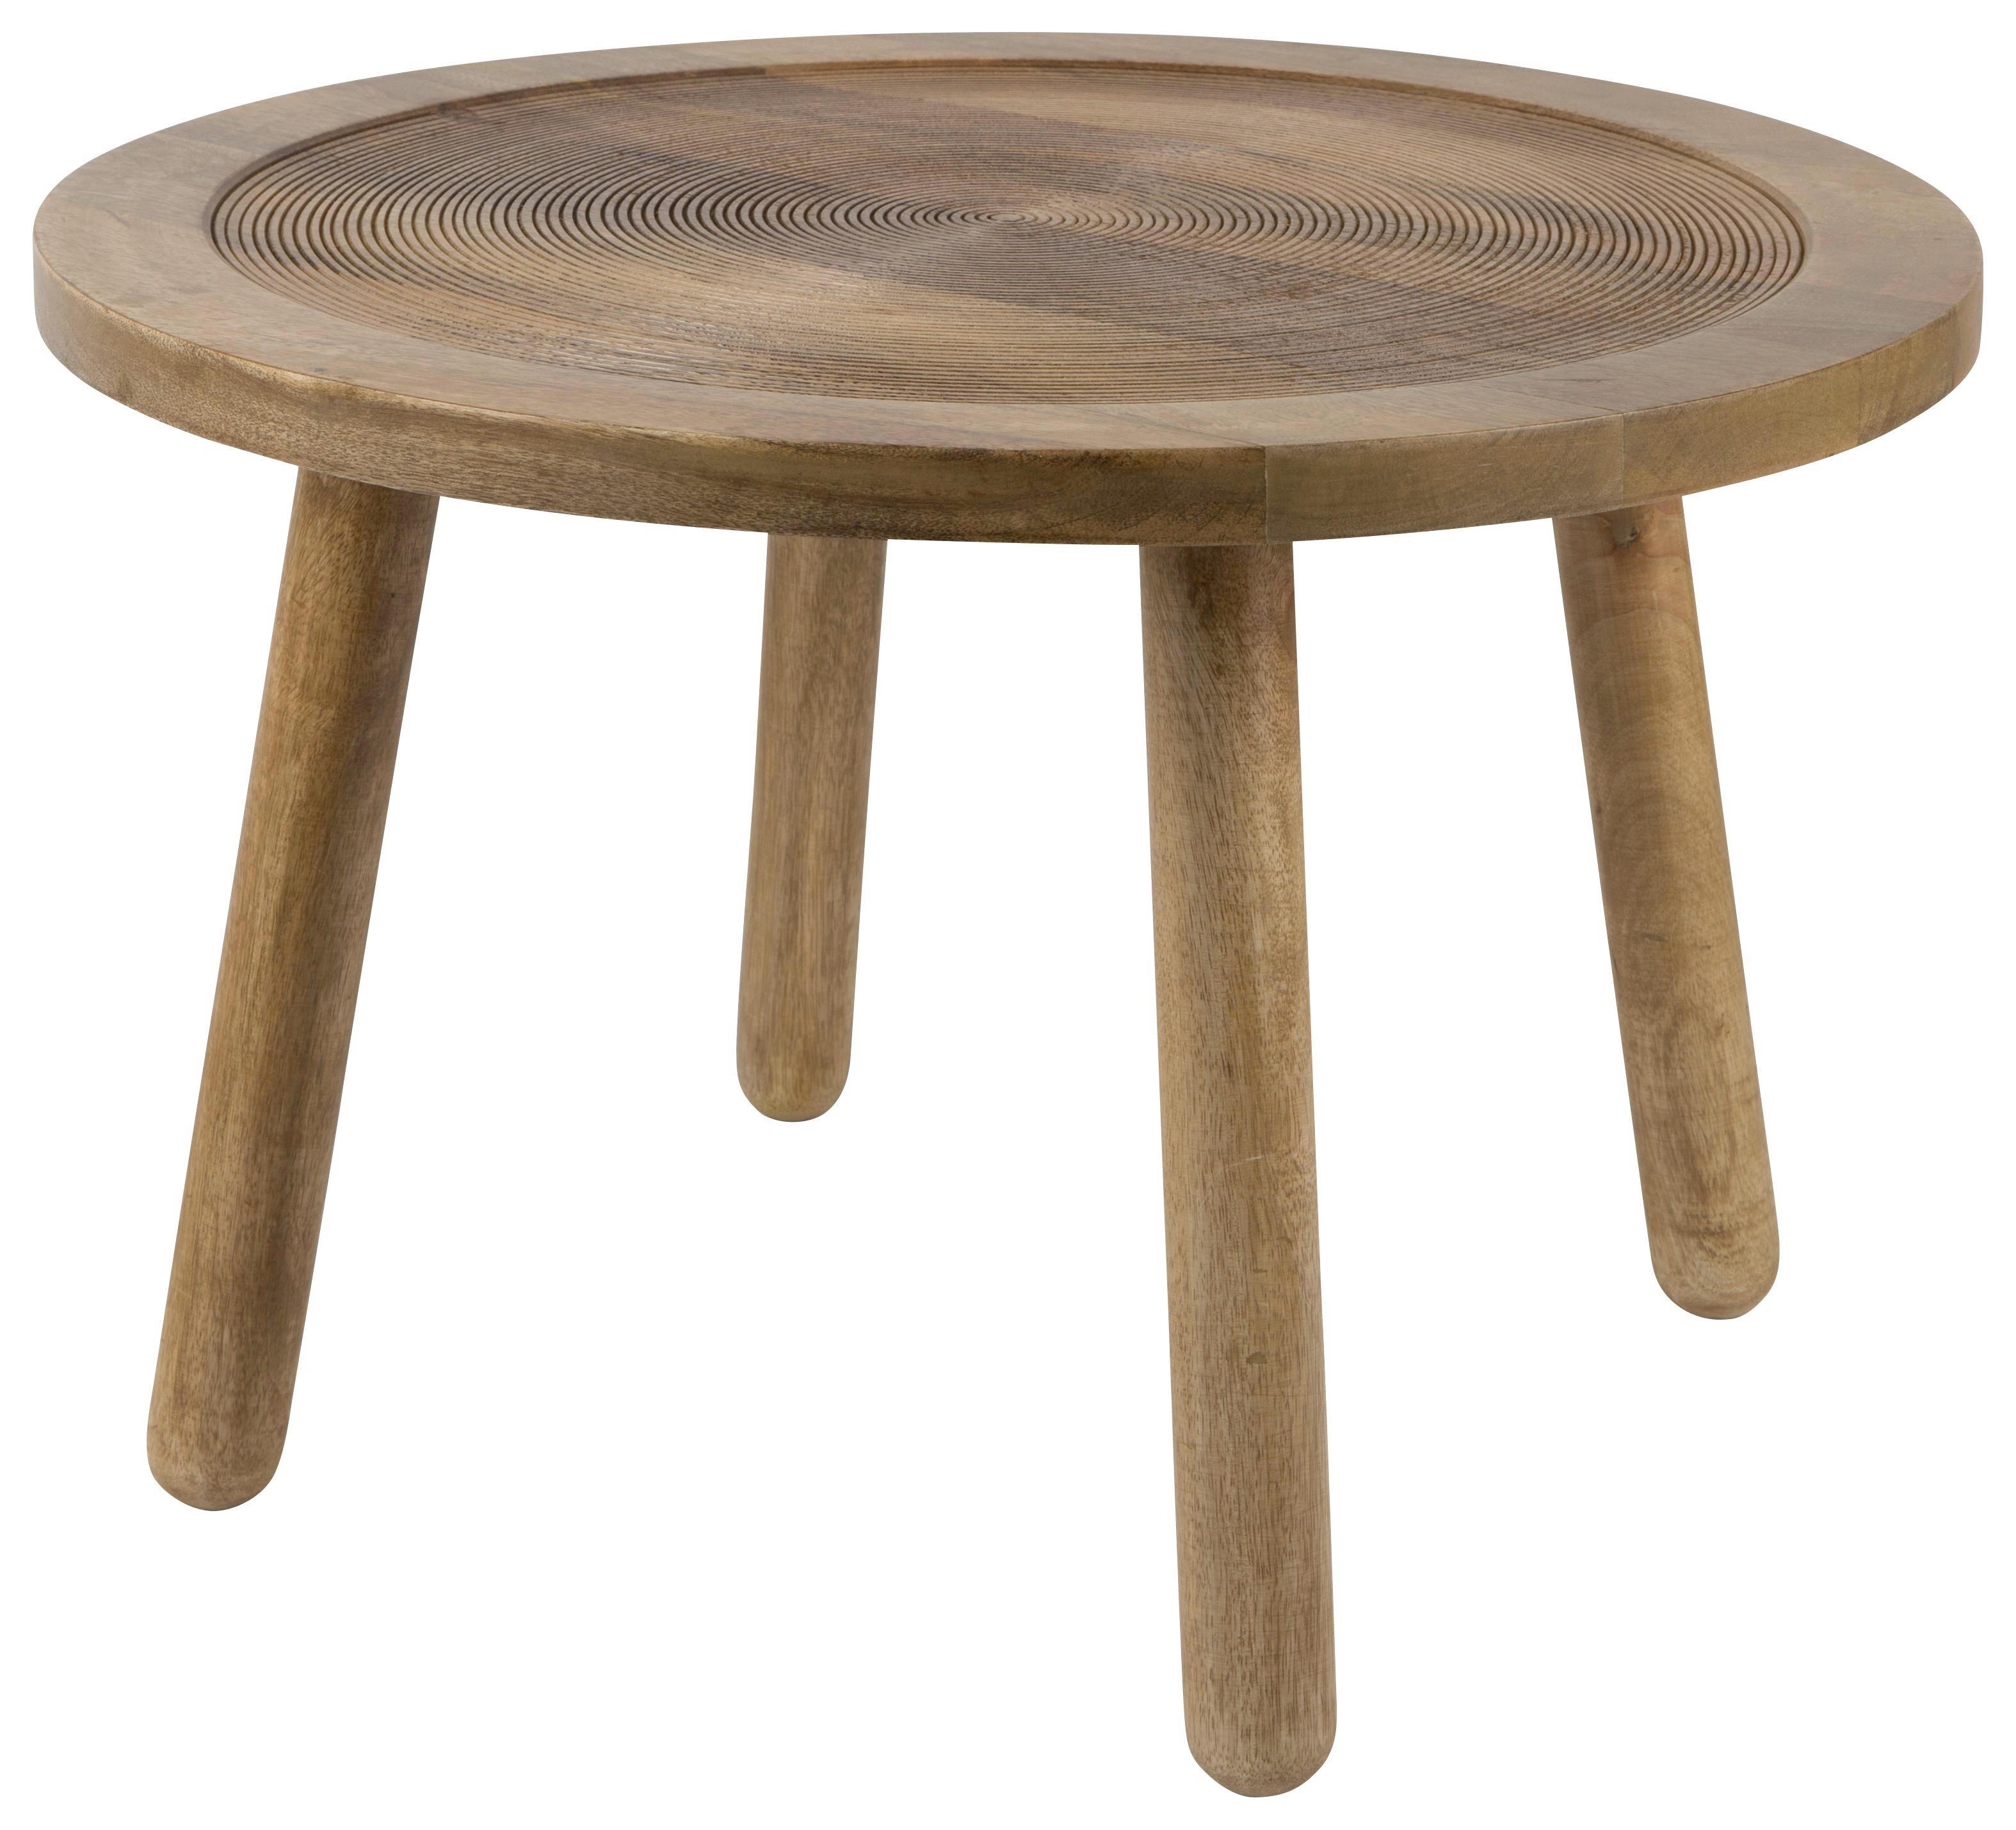 Awesome Awesome Couchtisch Mangoholz Massiv Rund Naturfarben Naturfarben  Modern Holz Cm With Couchtisch Mangoholz With Xxxlutz Couchtisch With  Couchtisch ...